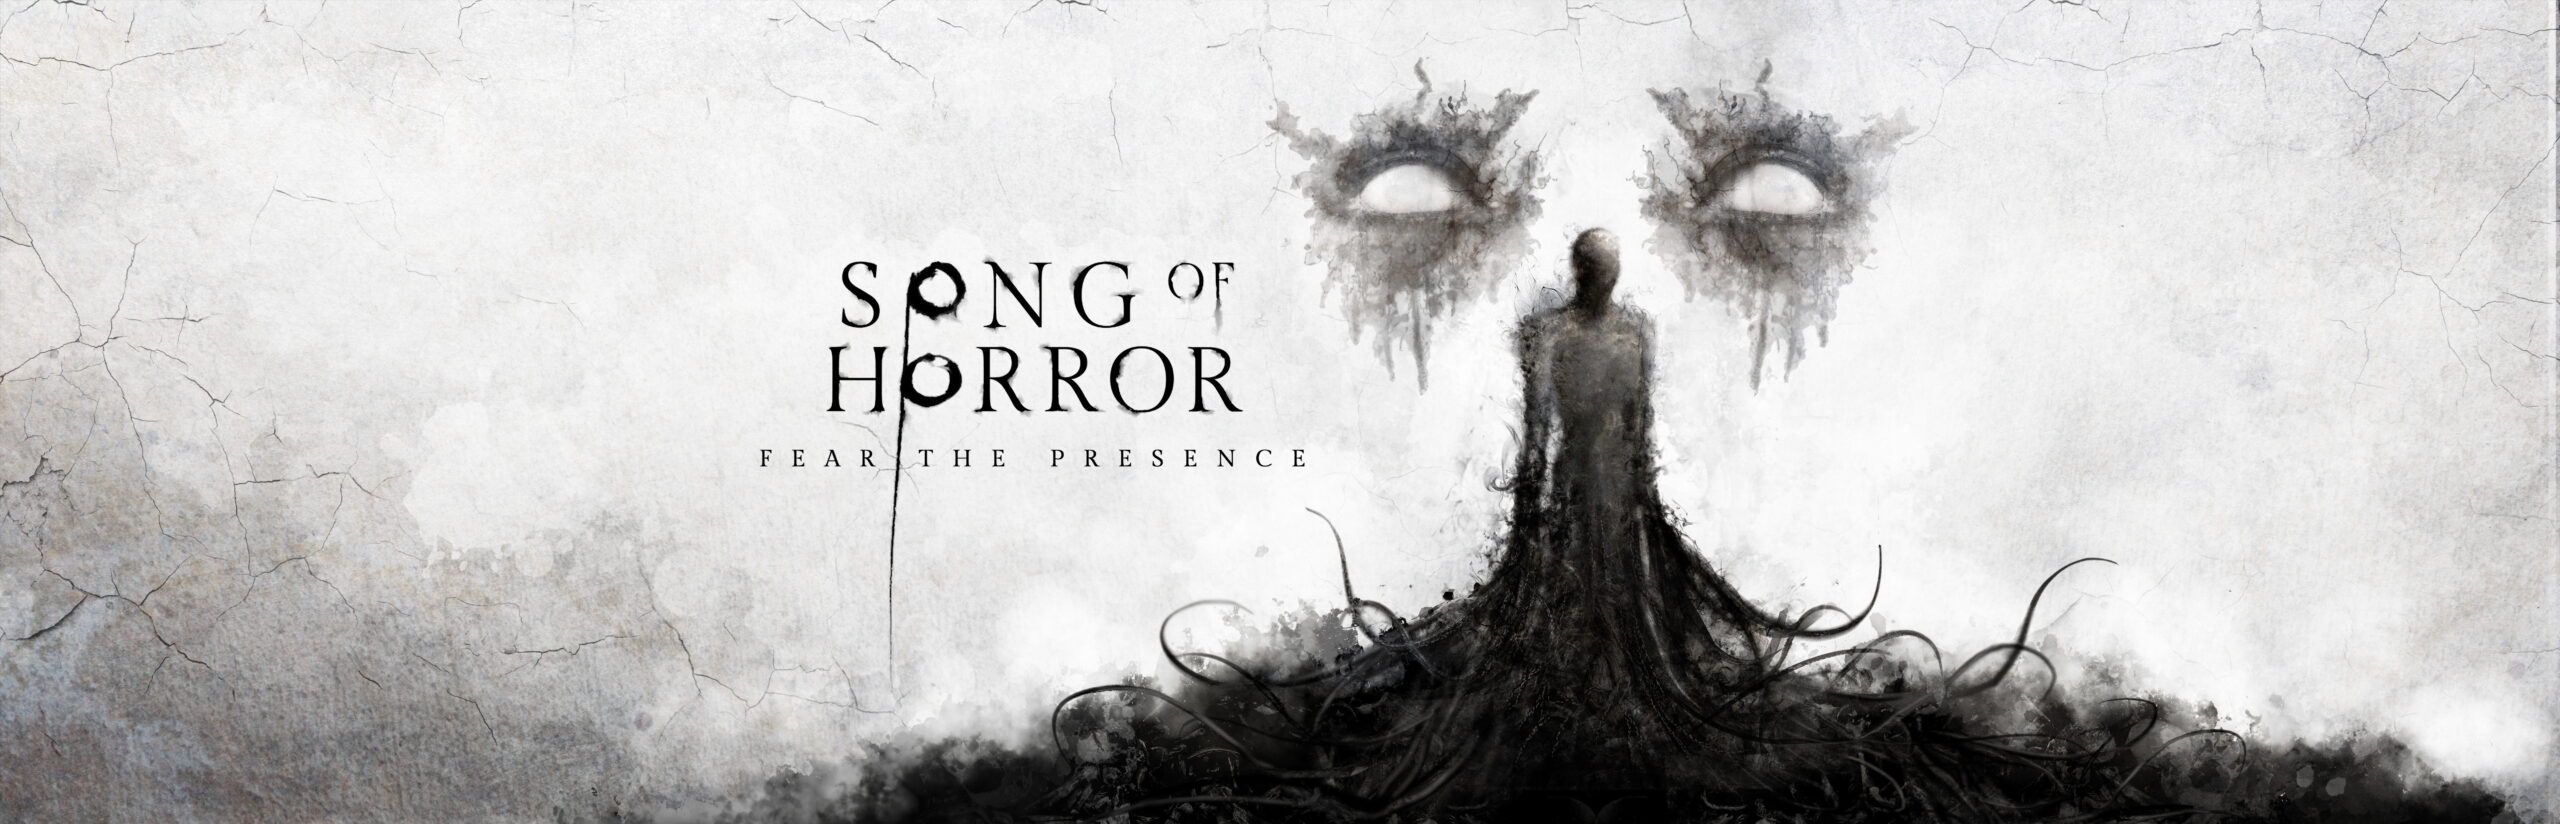 Song of Horror Cover Art